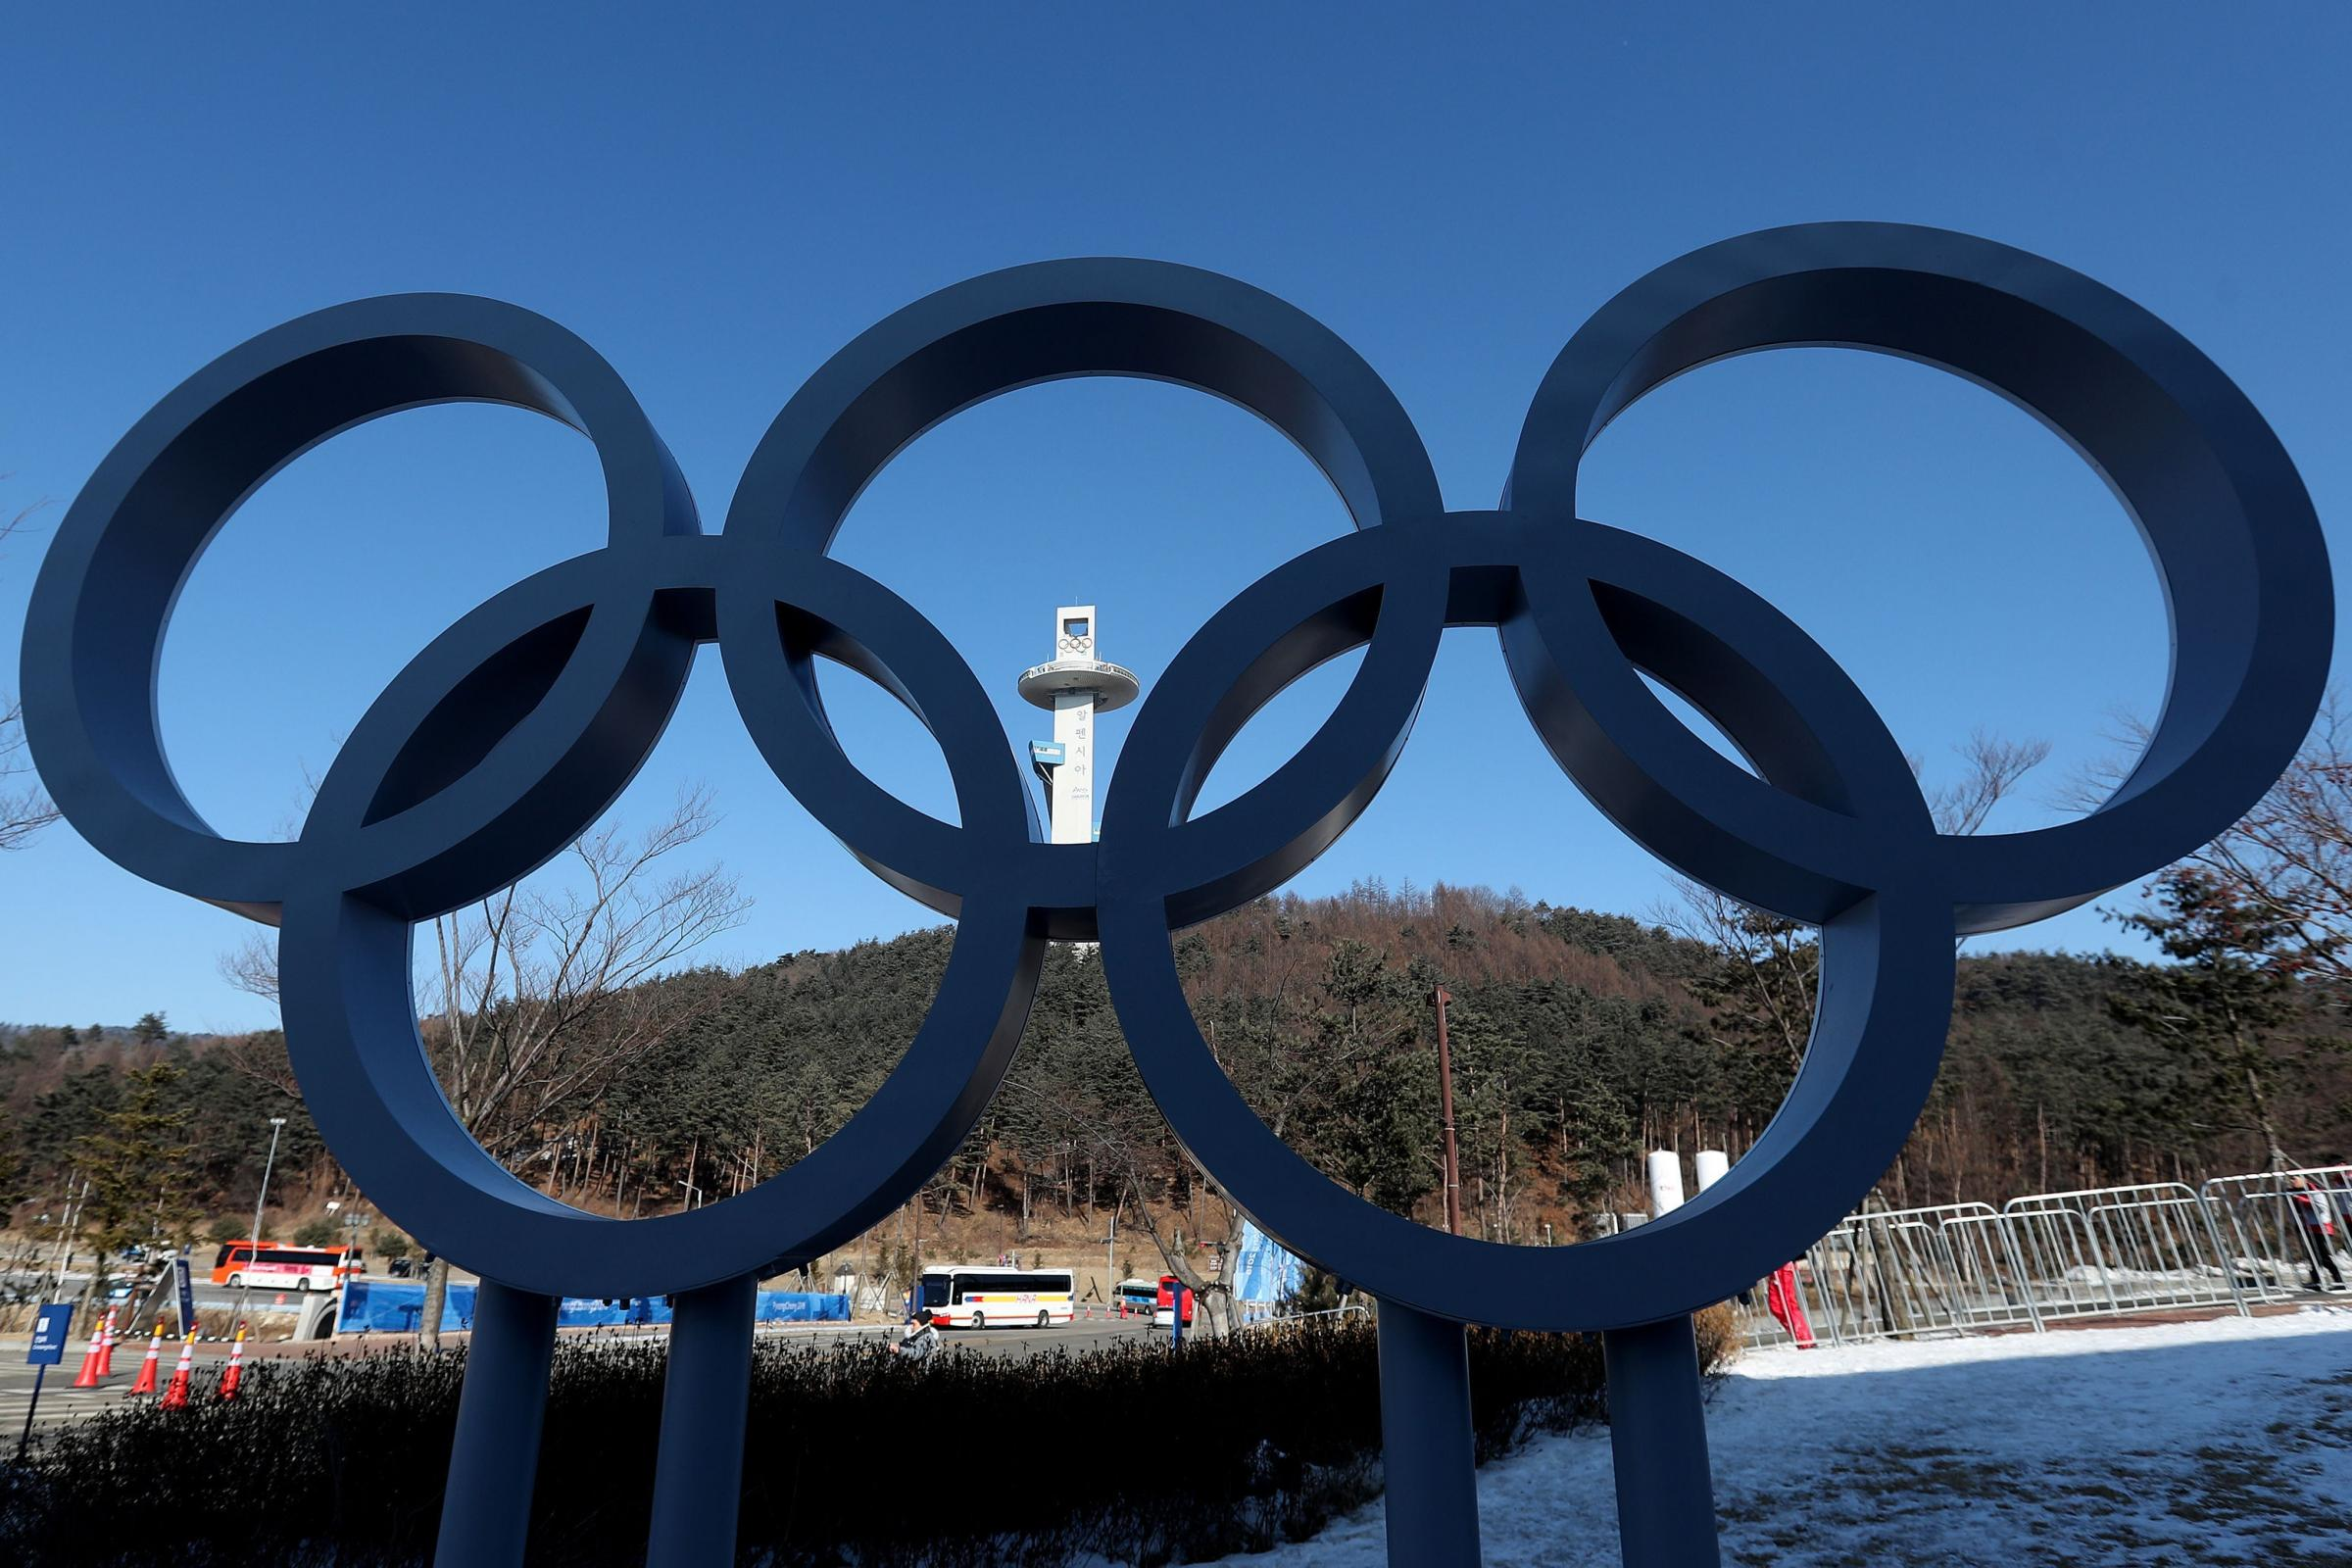 The Winter Olympics begin with an opening ceremony in Pyeongchang today